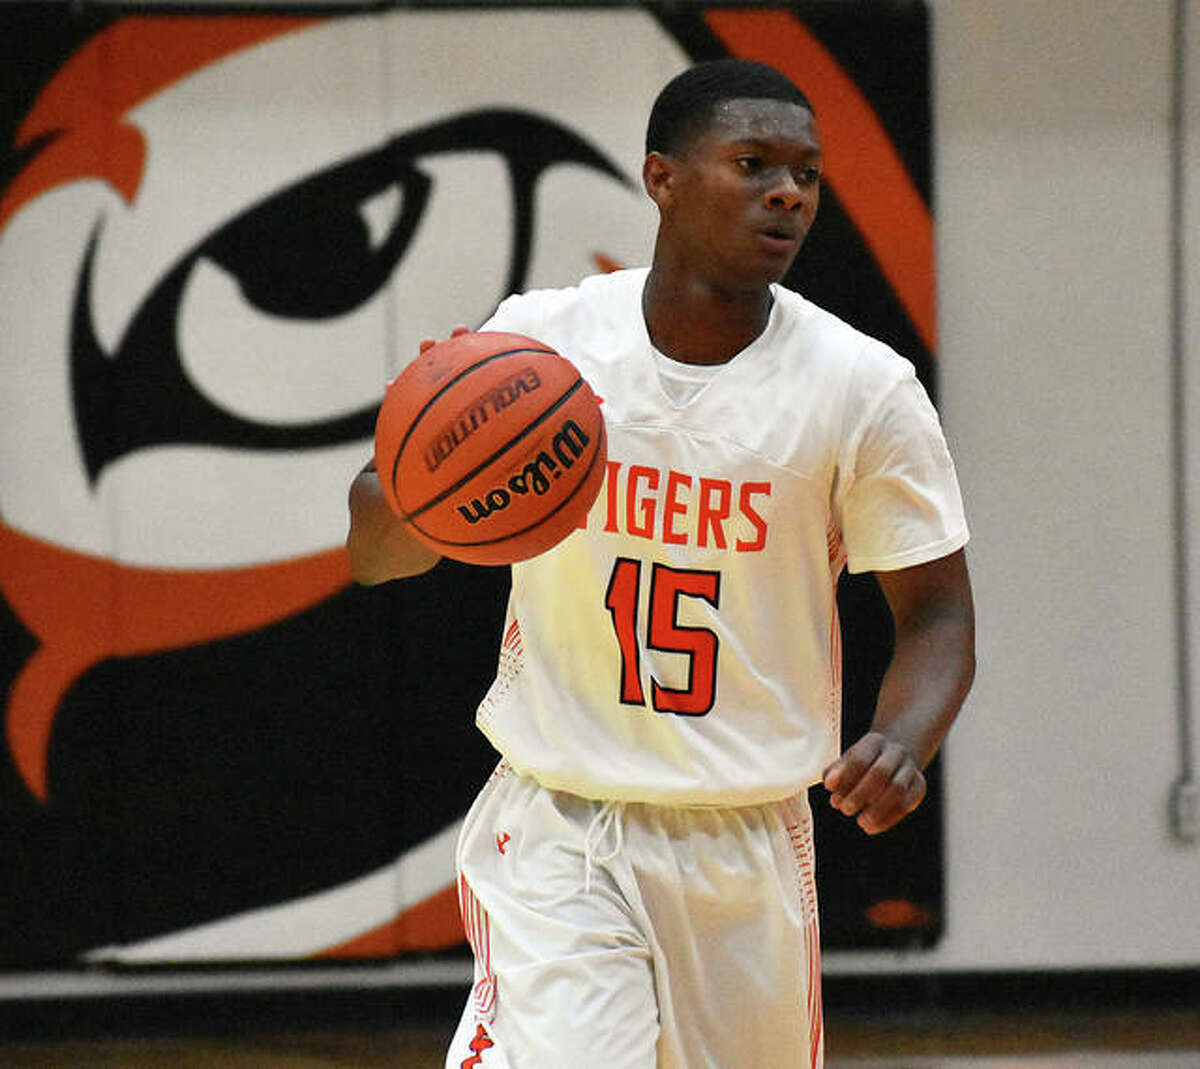 Edwardsville guard Willie Thomas brings the ball up the court in the fourth quarter.